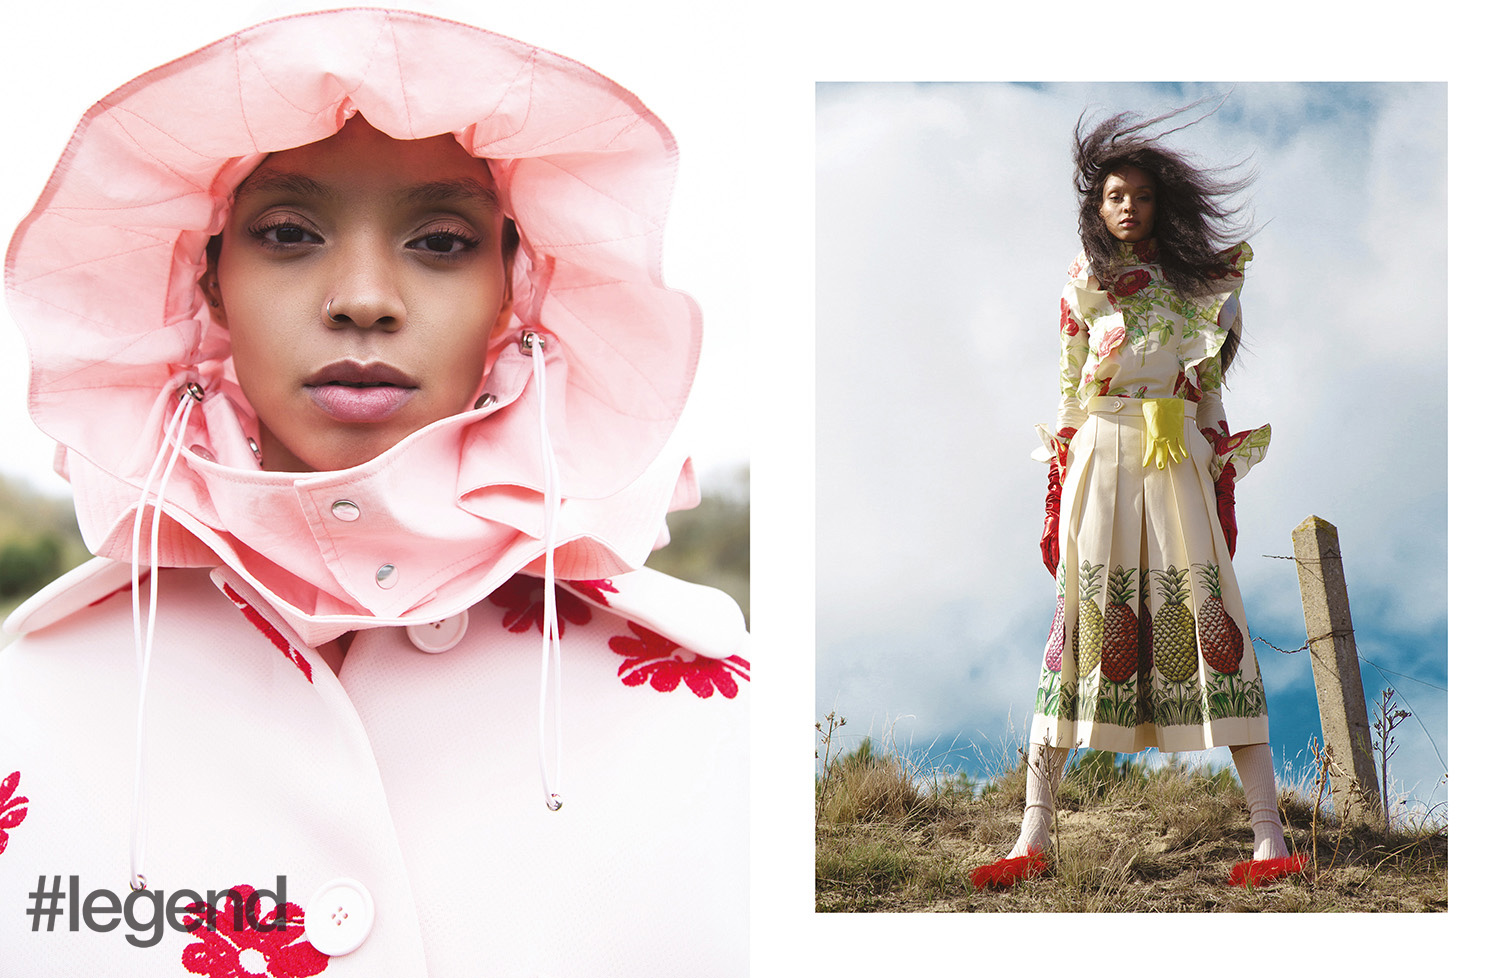 LEFT: Hat _ Angel Chen | Coat _ Simone Rocha; RIGHT: Top and skirt _ Gucci | Gloves, socks and shoes _ Stylist's own